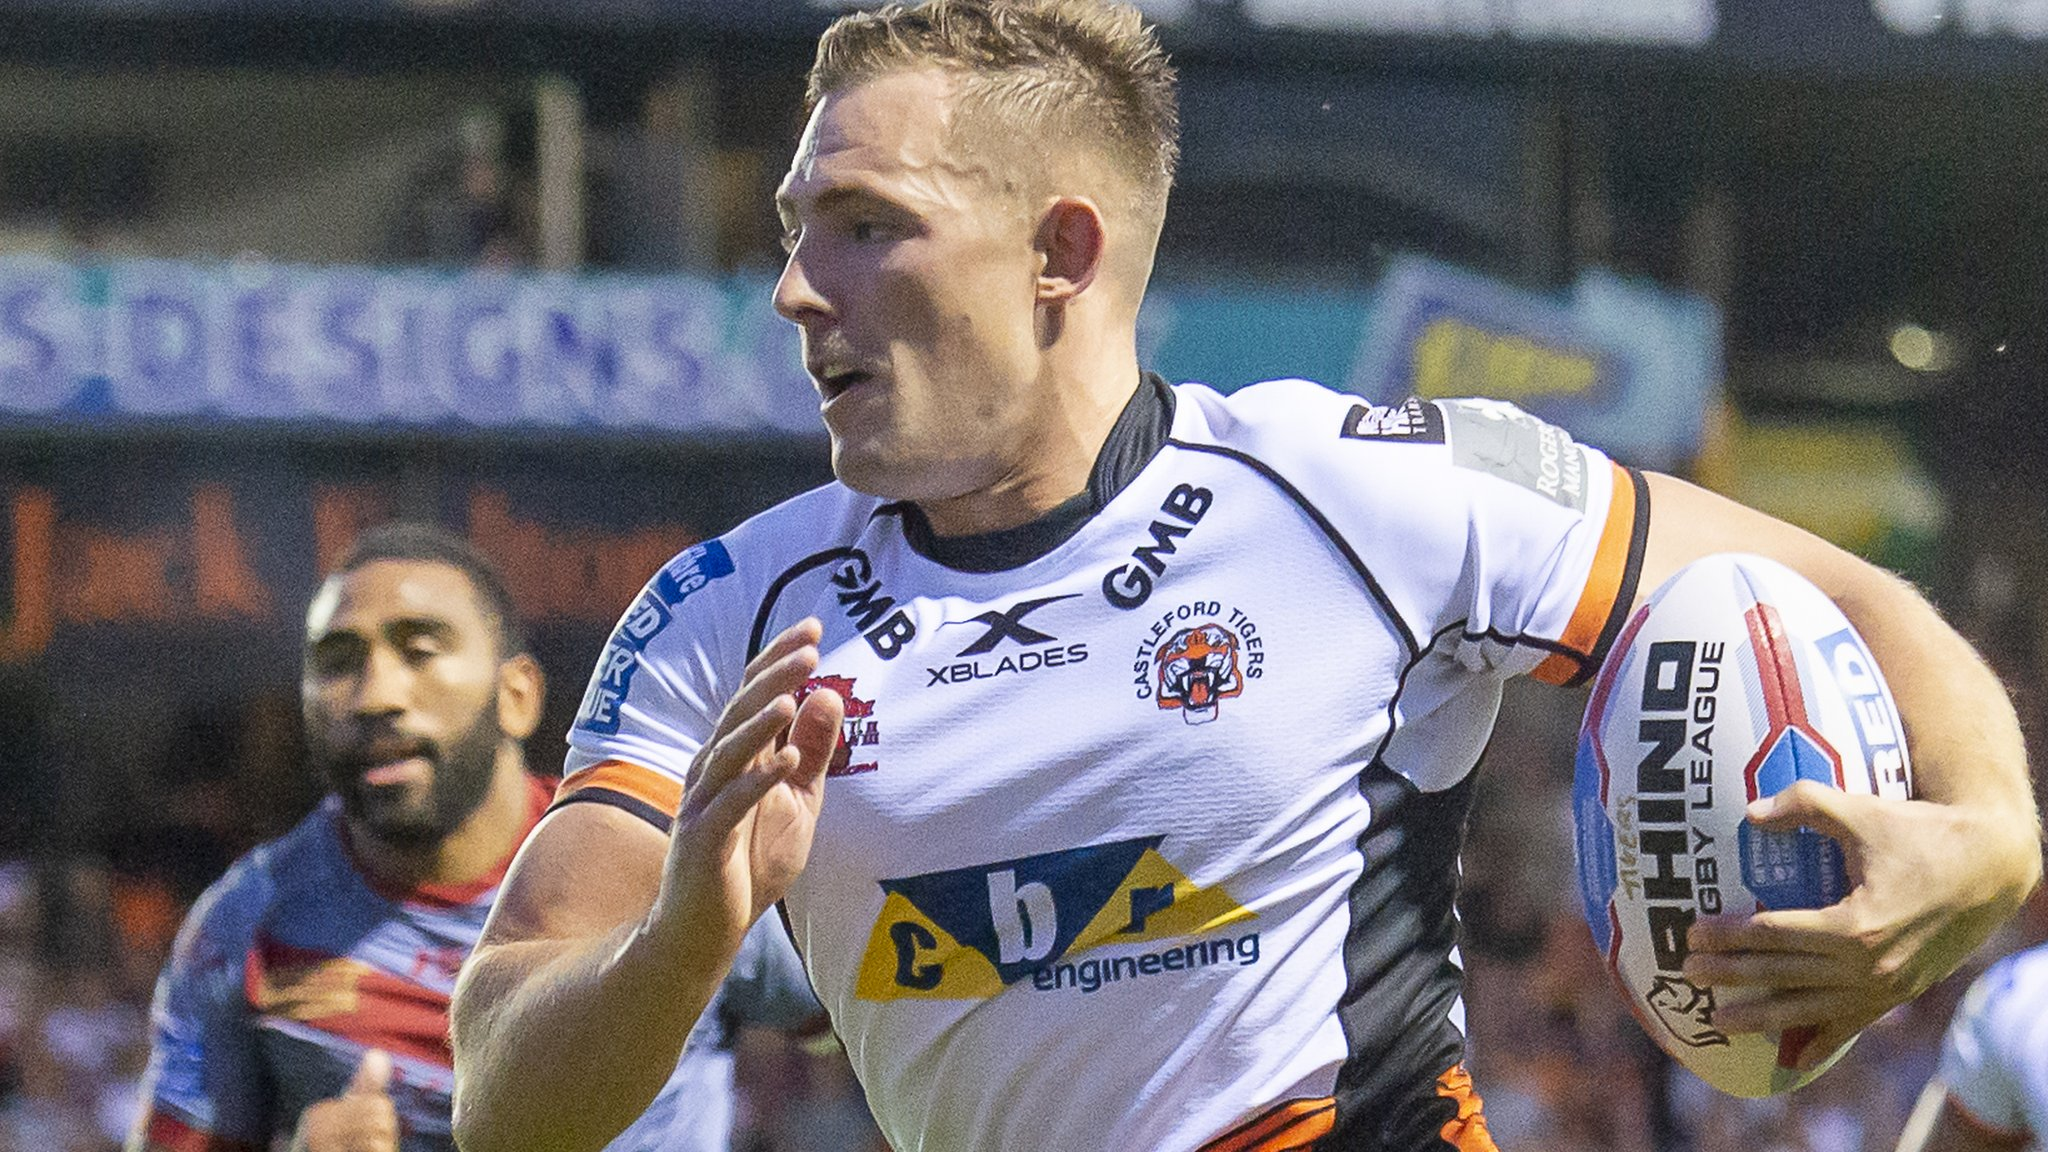 Super 8s: Castleford Tigers 42-10 Wakefield Trinity